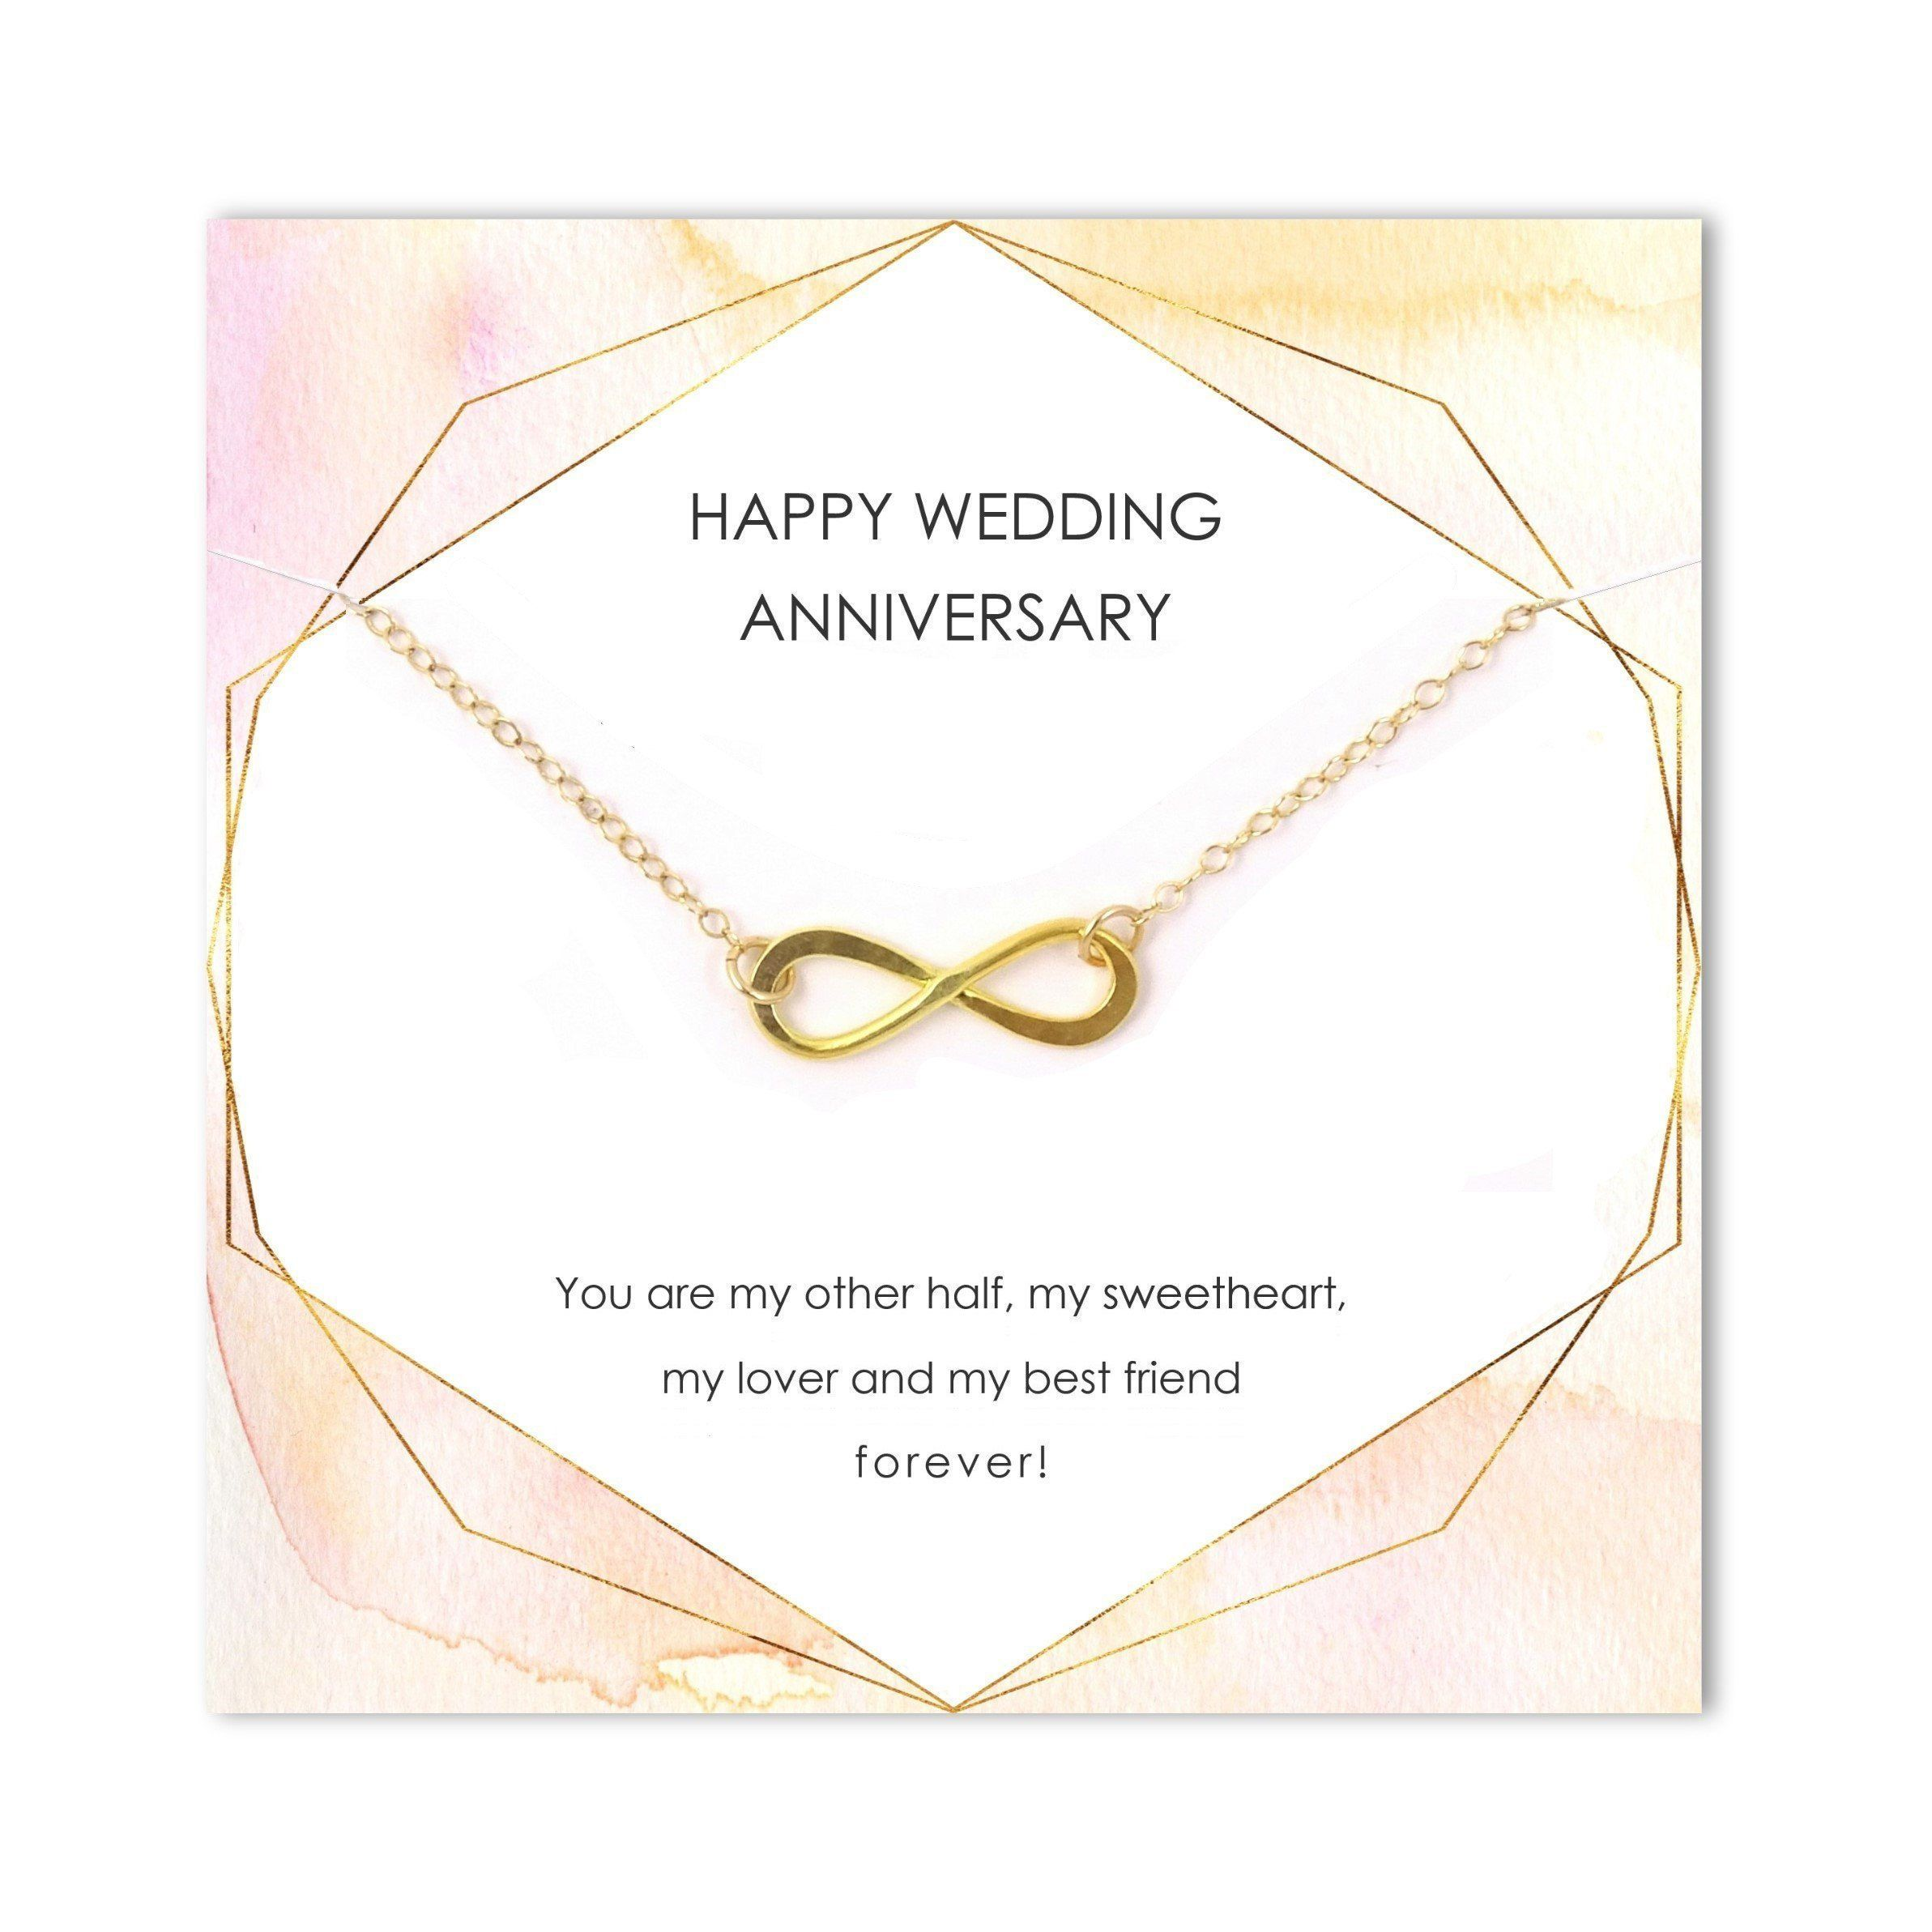 21st Wedding Anniversary Gifts For Her: Pin By Crystalshadow On THE EDIT Magazine